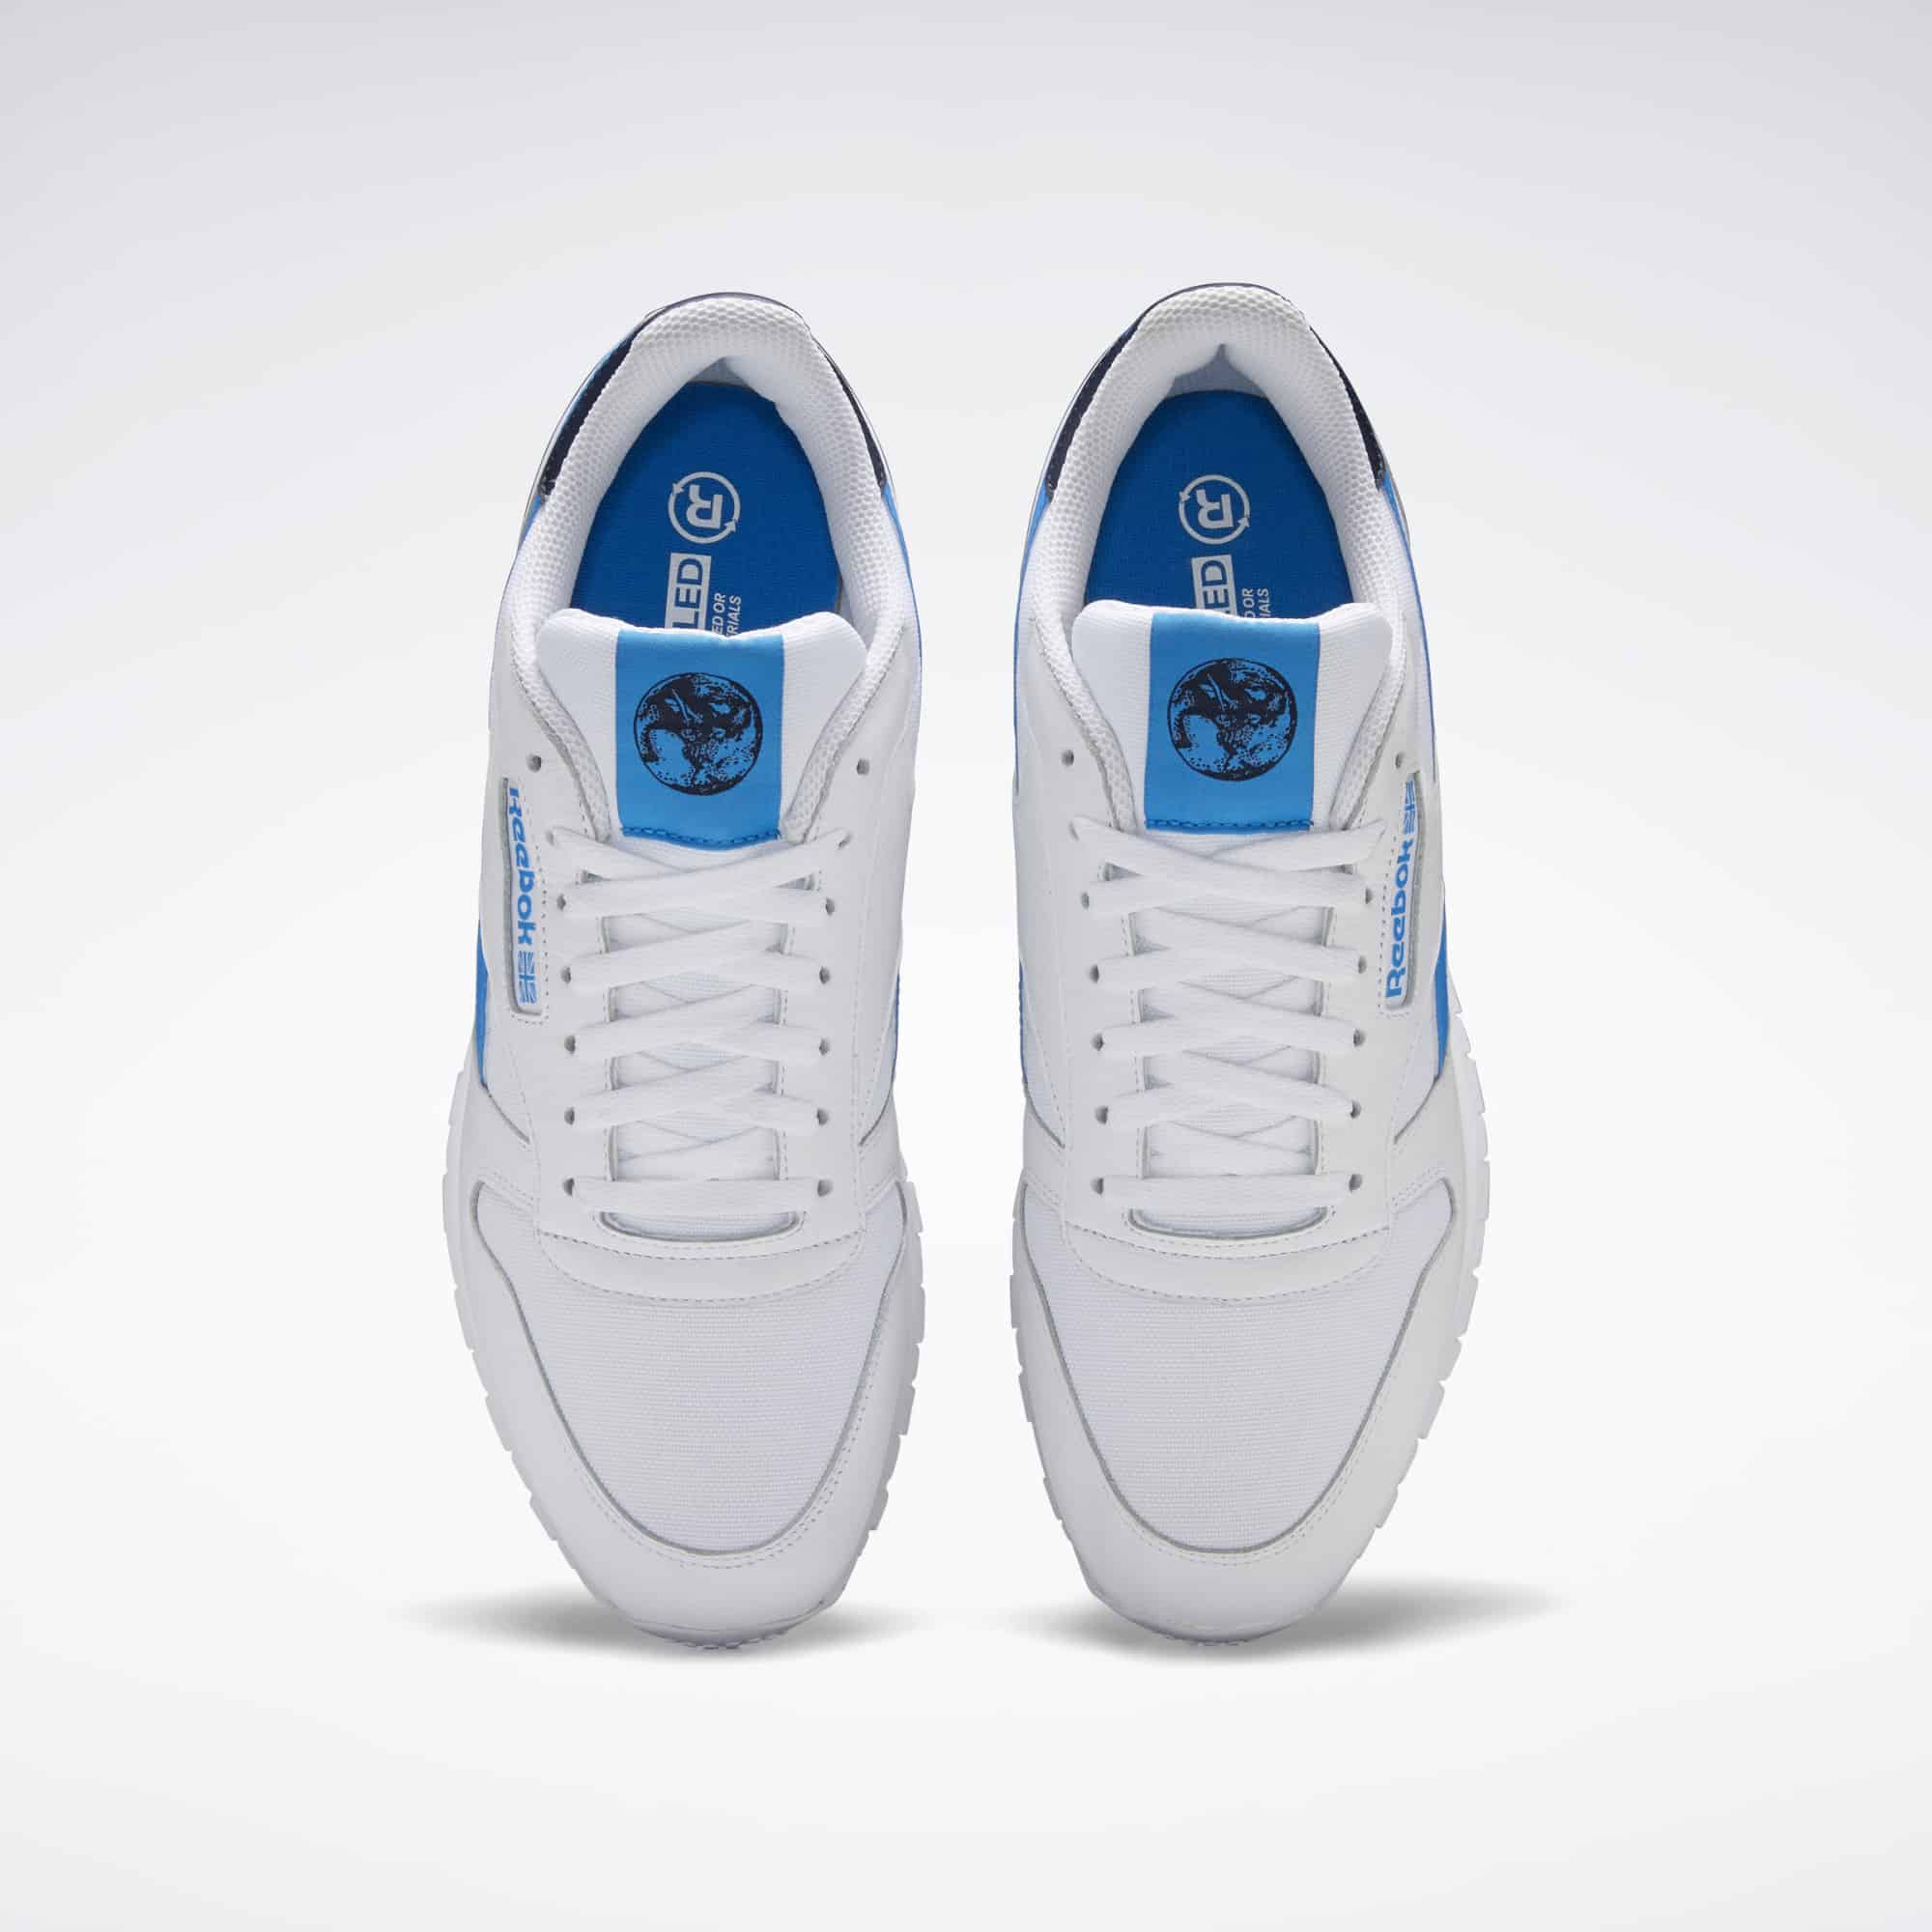 Recycled Classic Leather Reebok White and Blue